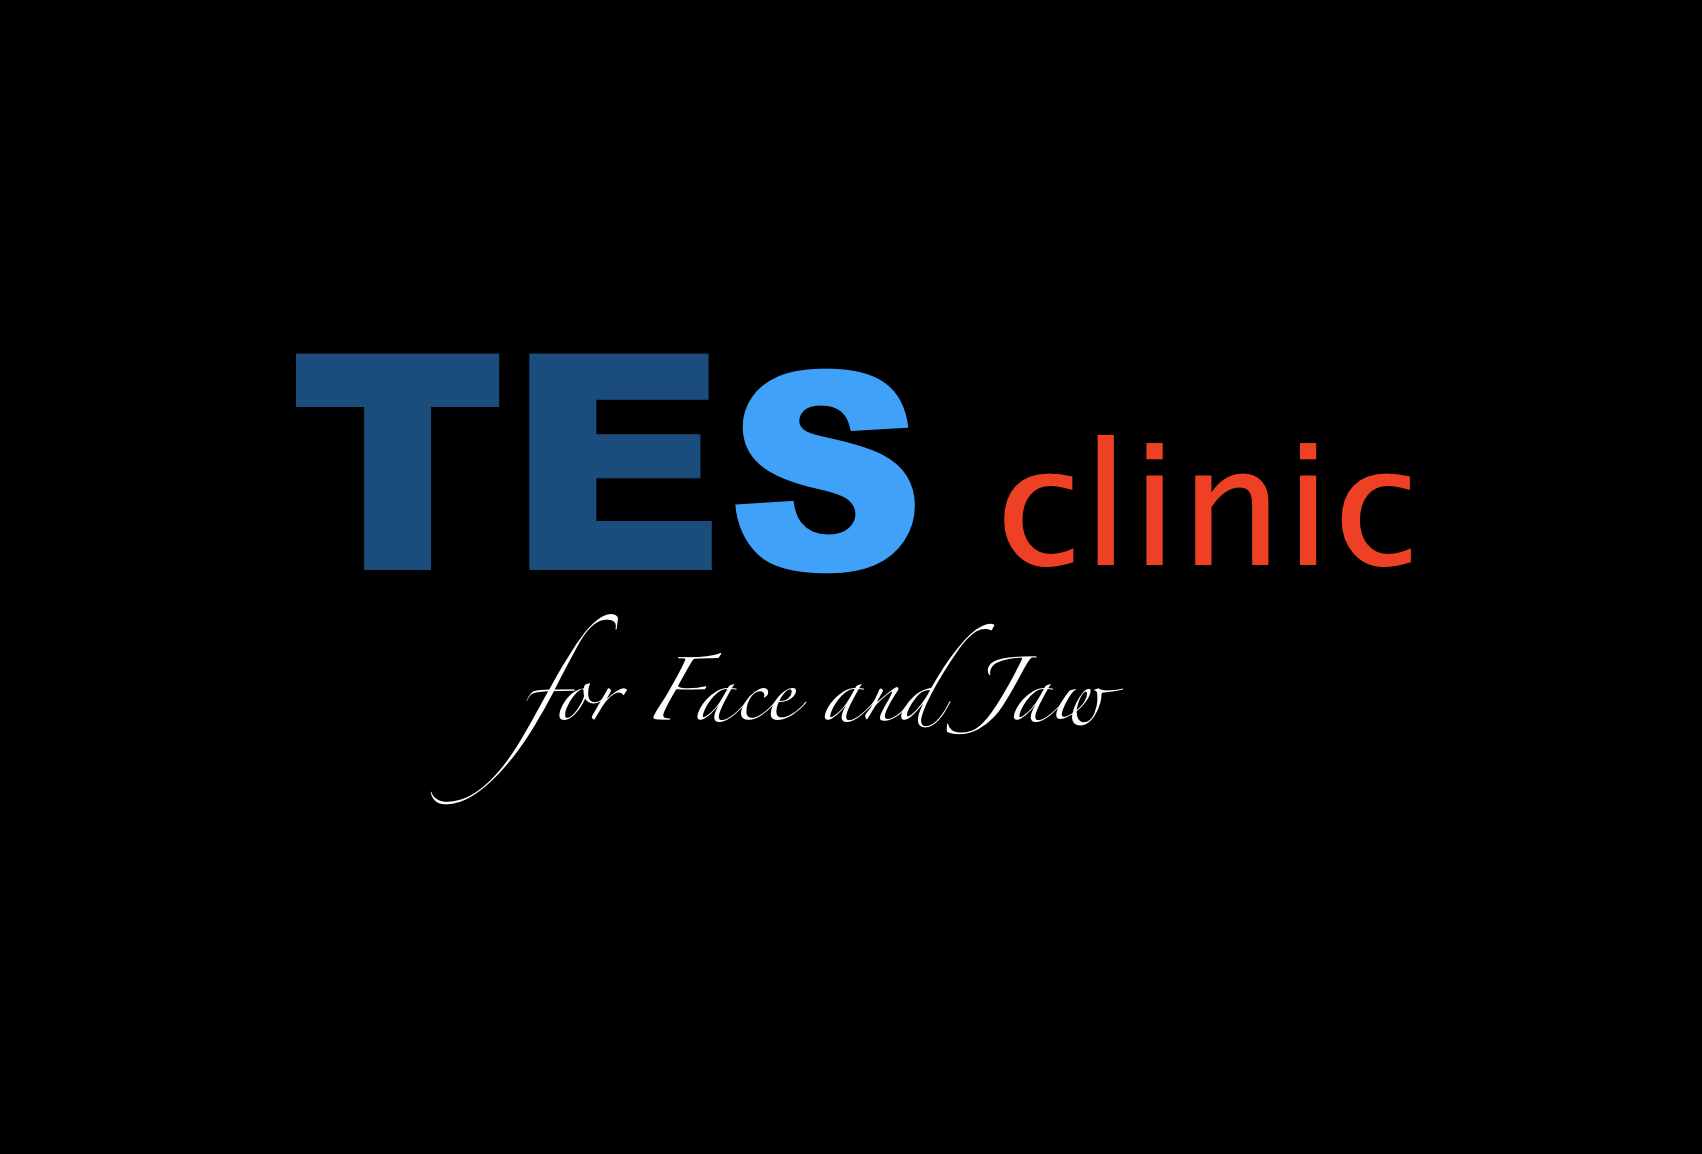 tes clinic for face and jaw